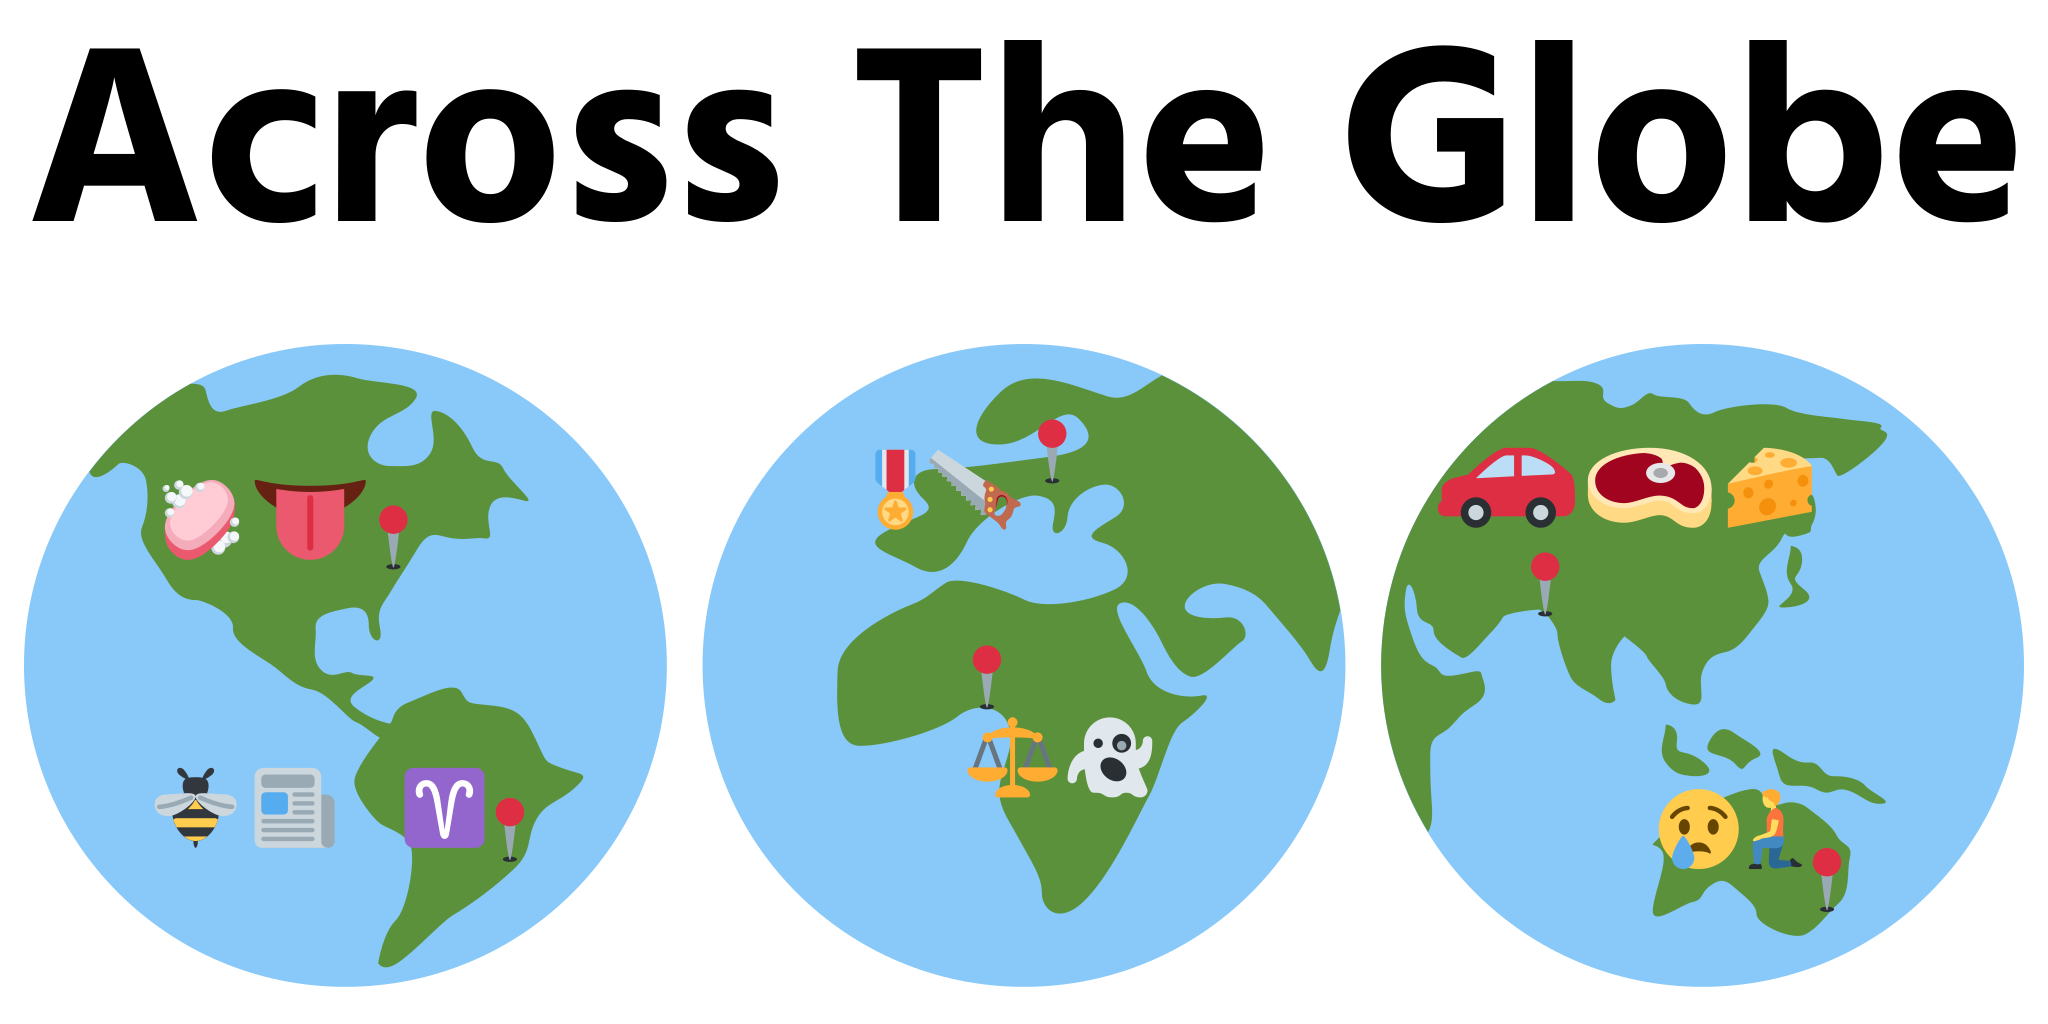 Emoji Riddles™: Across The Globe by Sidework AI